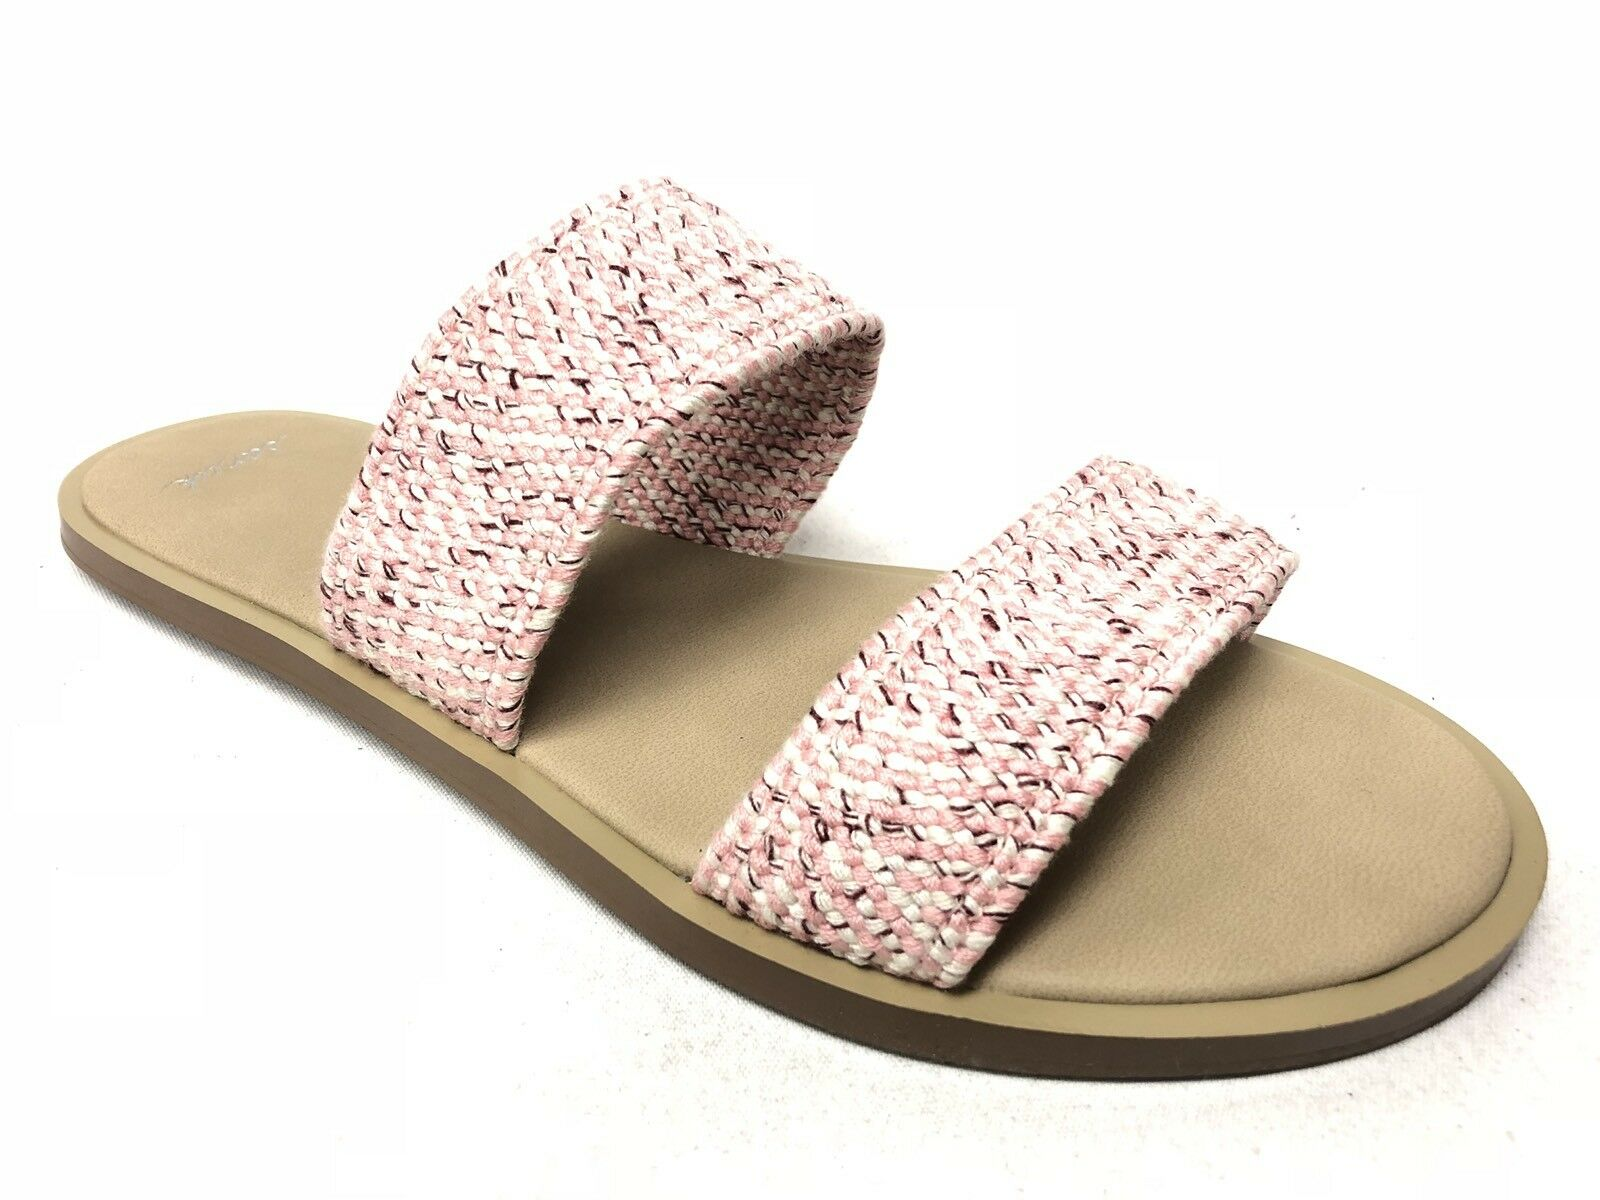 Sanuk Slides Yoga Gora Gora TX Strawberry Cream Women's Slides Sanuk 1016309 Sandals Slip On 05db68